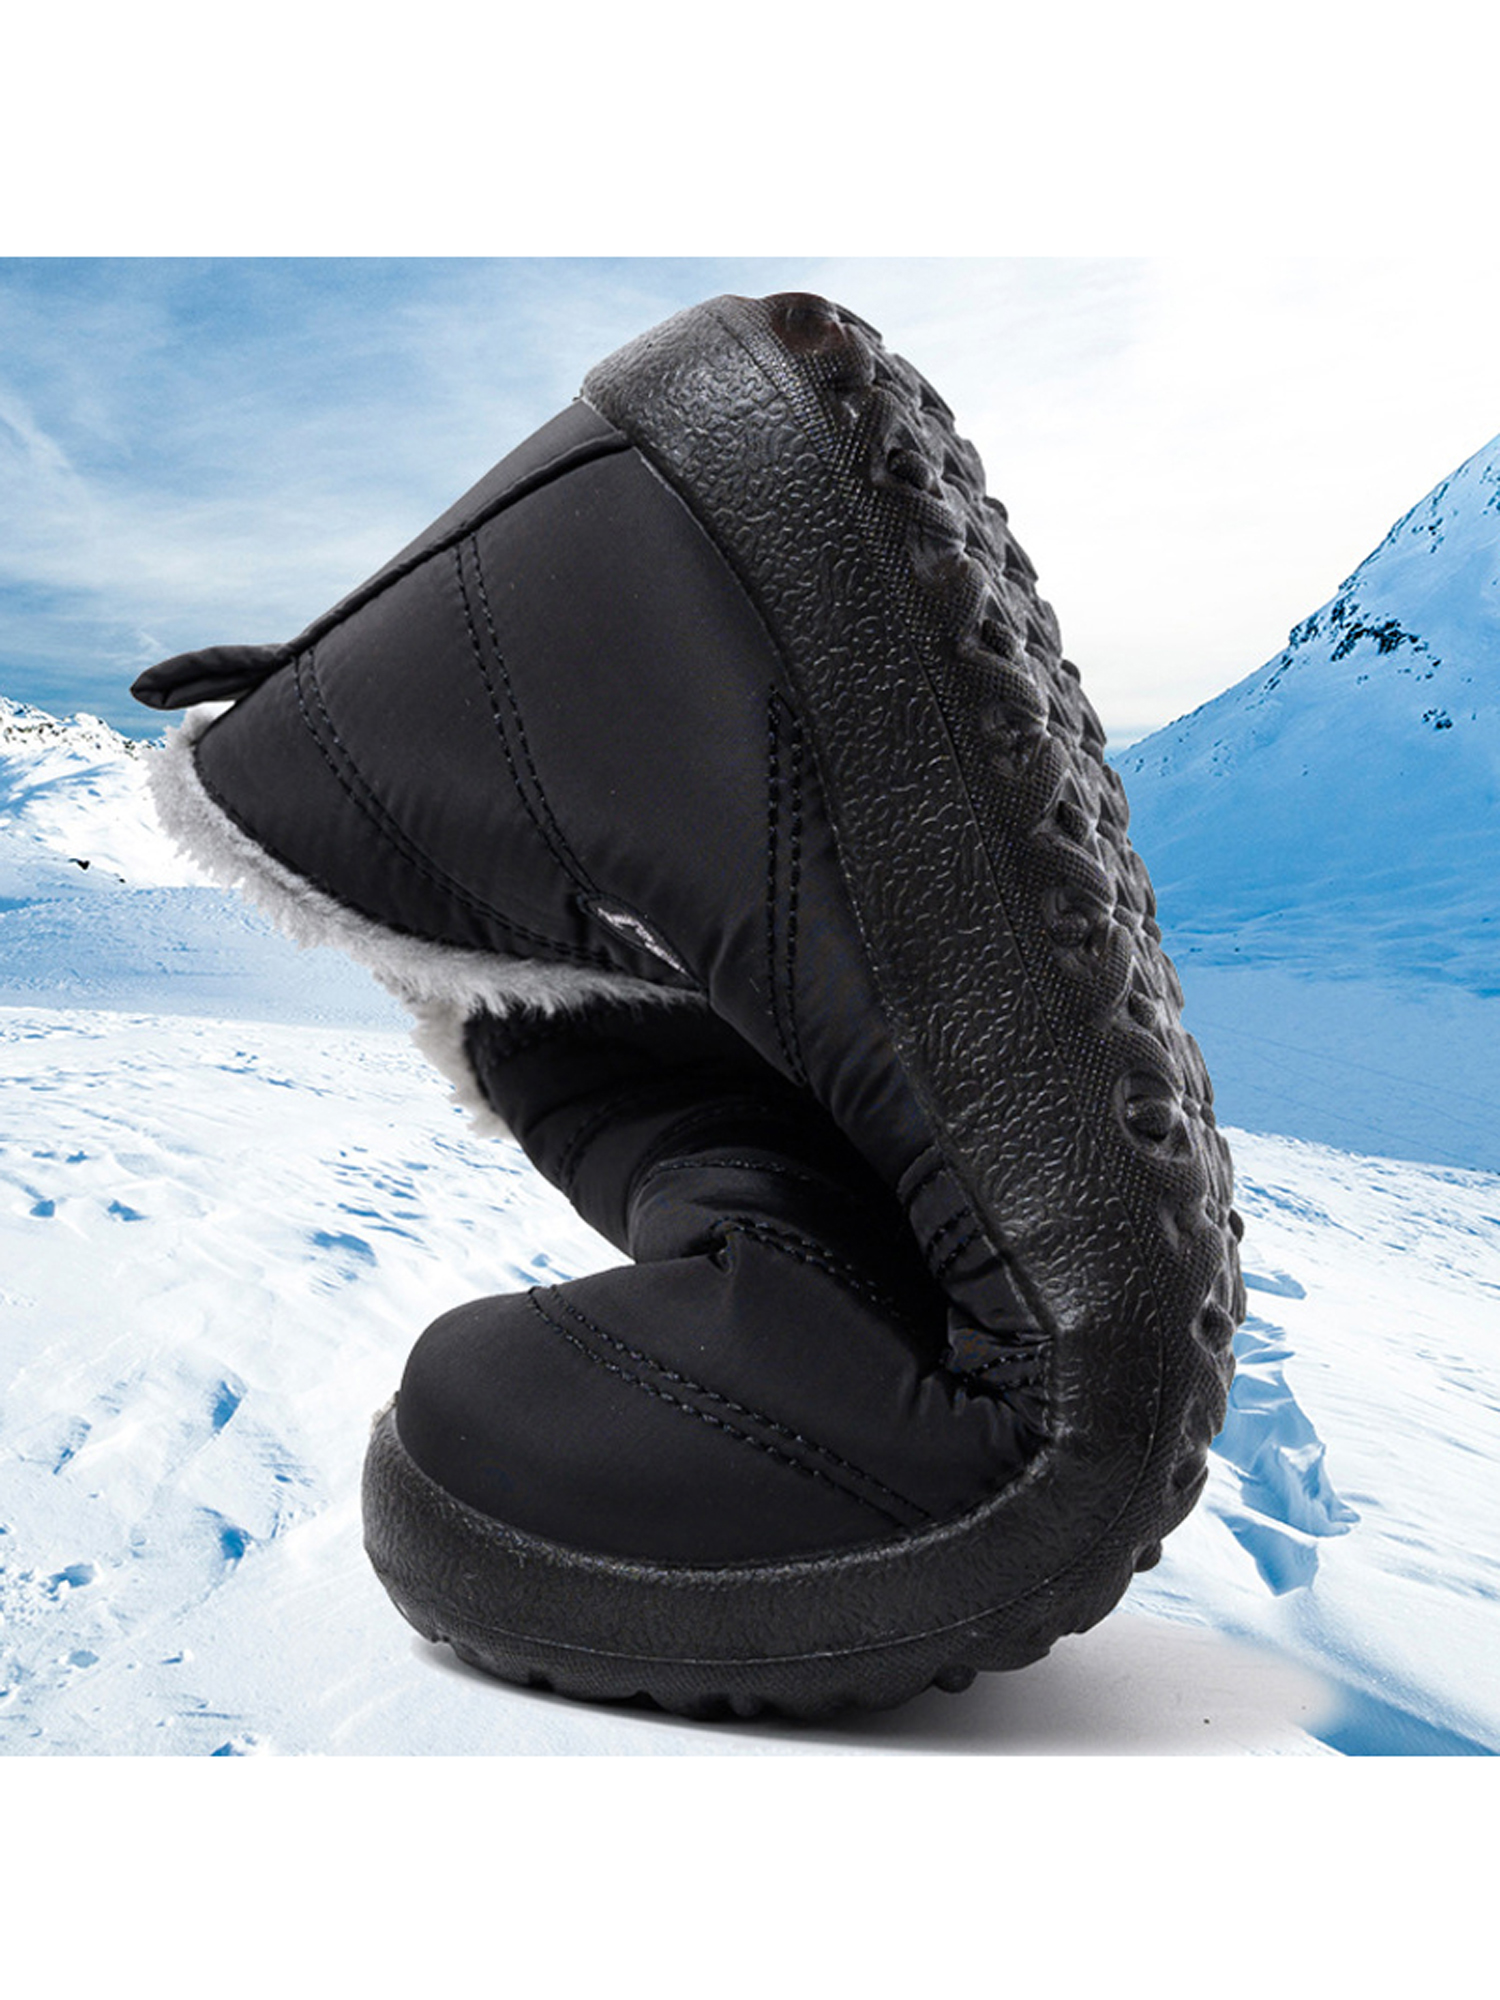 Details about  /Winter Long Snow Boots Women Over The Knee Boots Casual Flat with Wedges Boots